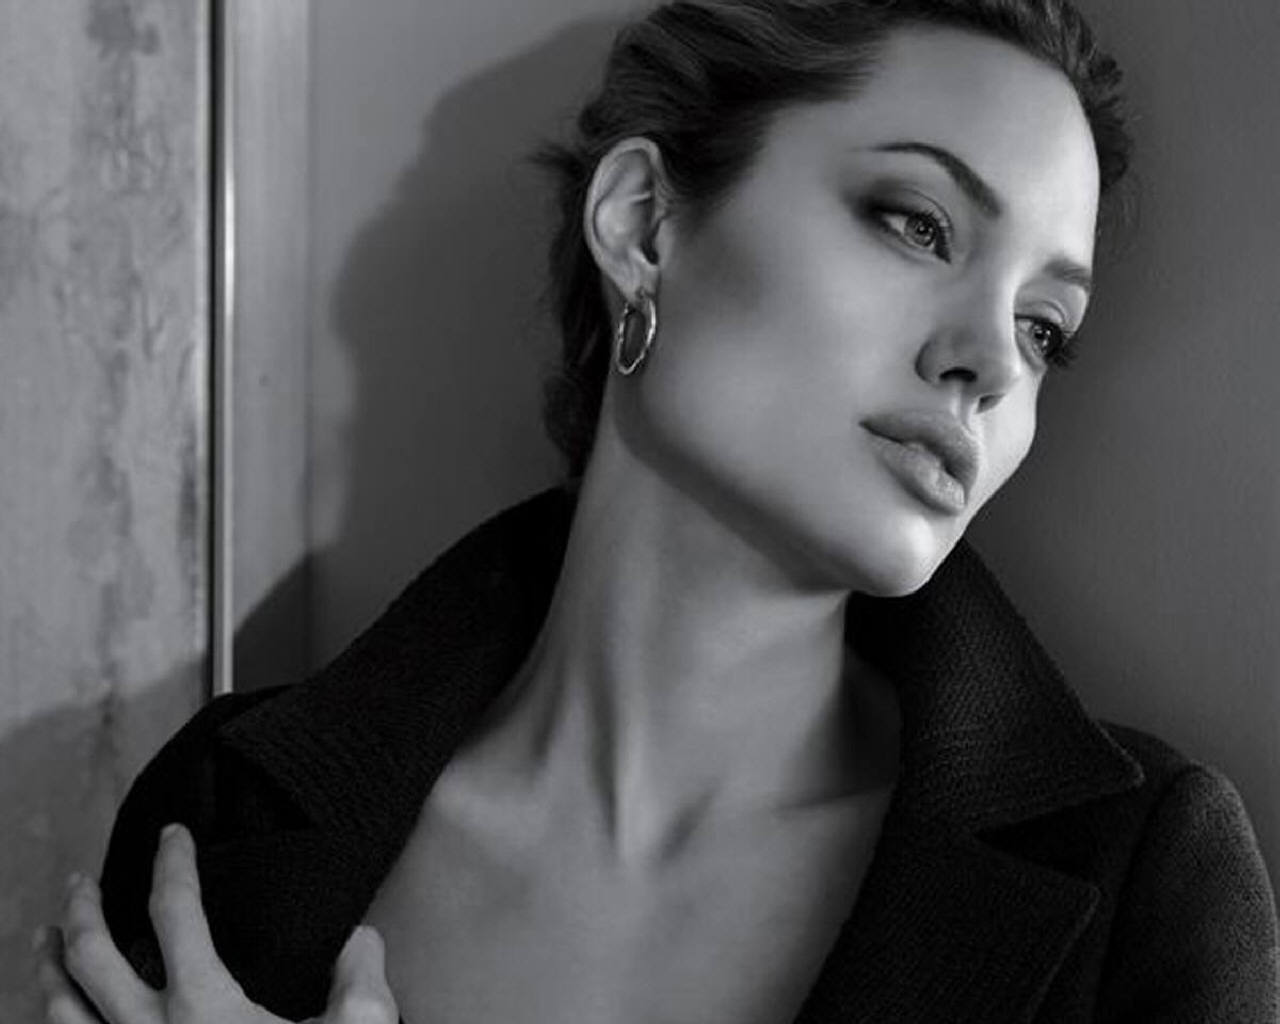 Angelina Jolie Angelina Jolie Wallpaper 178933 Fanpop